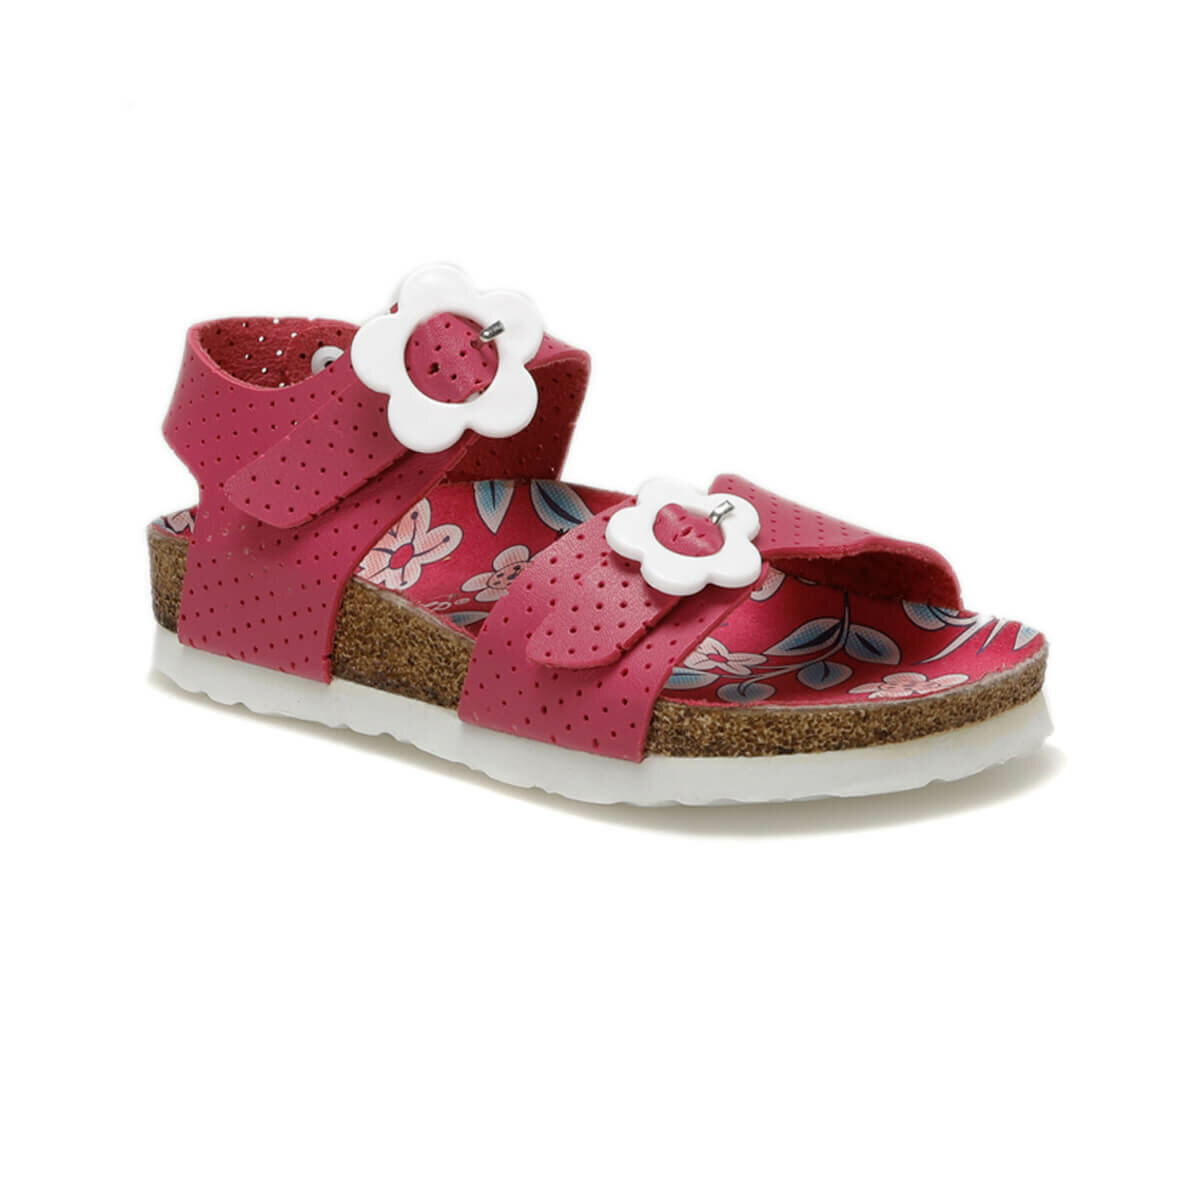 FLO 91.YUND Y.P Fuchsia Girls Child Sandals PINKSTEP